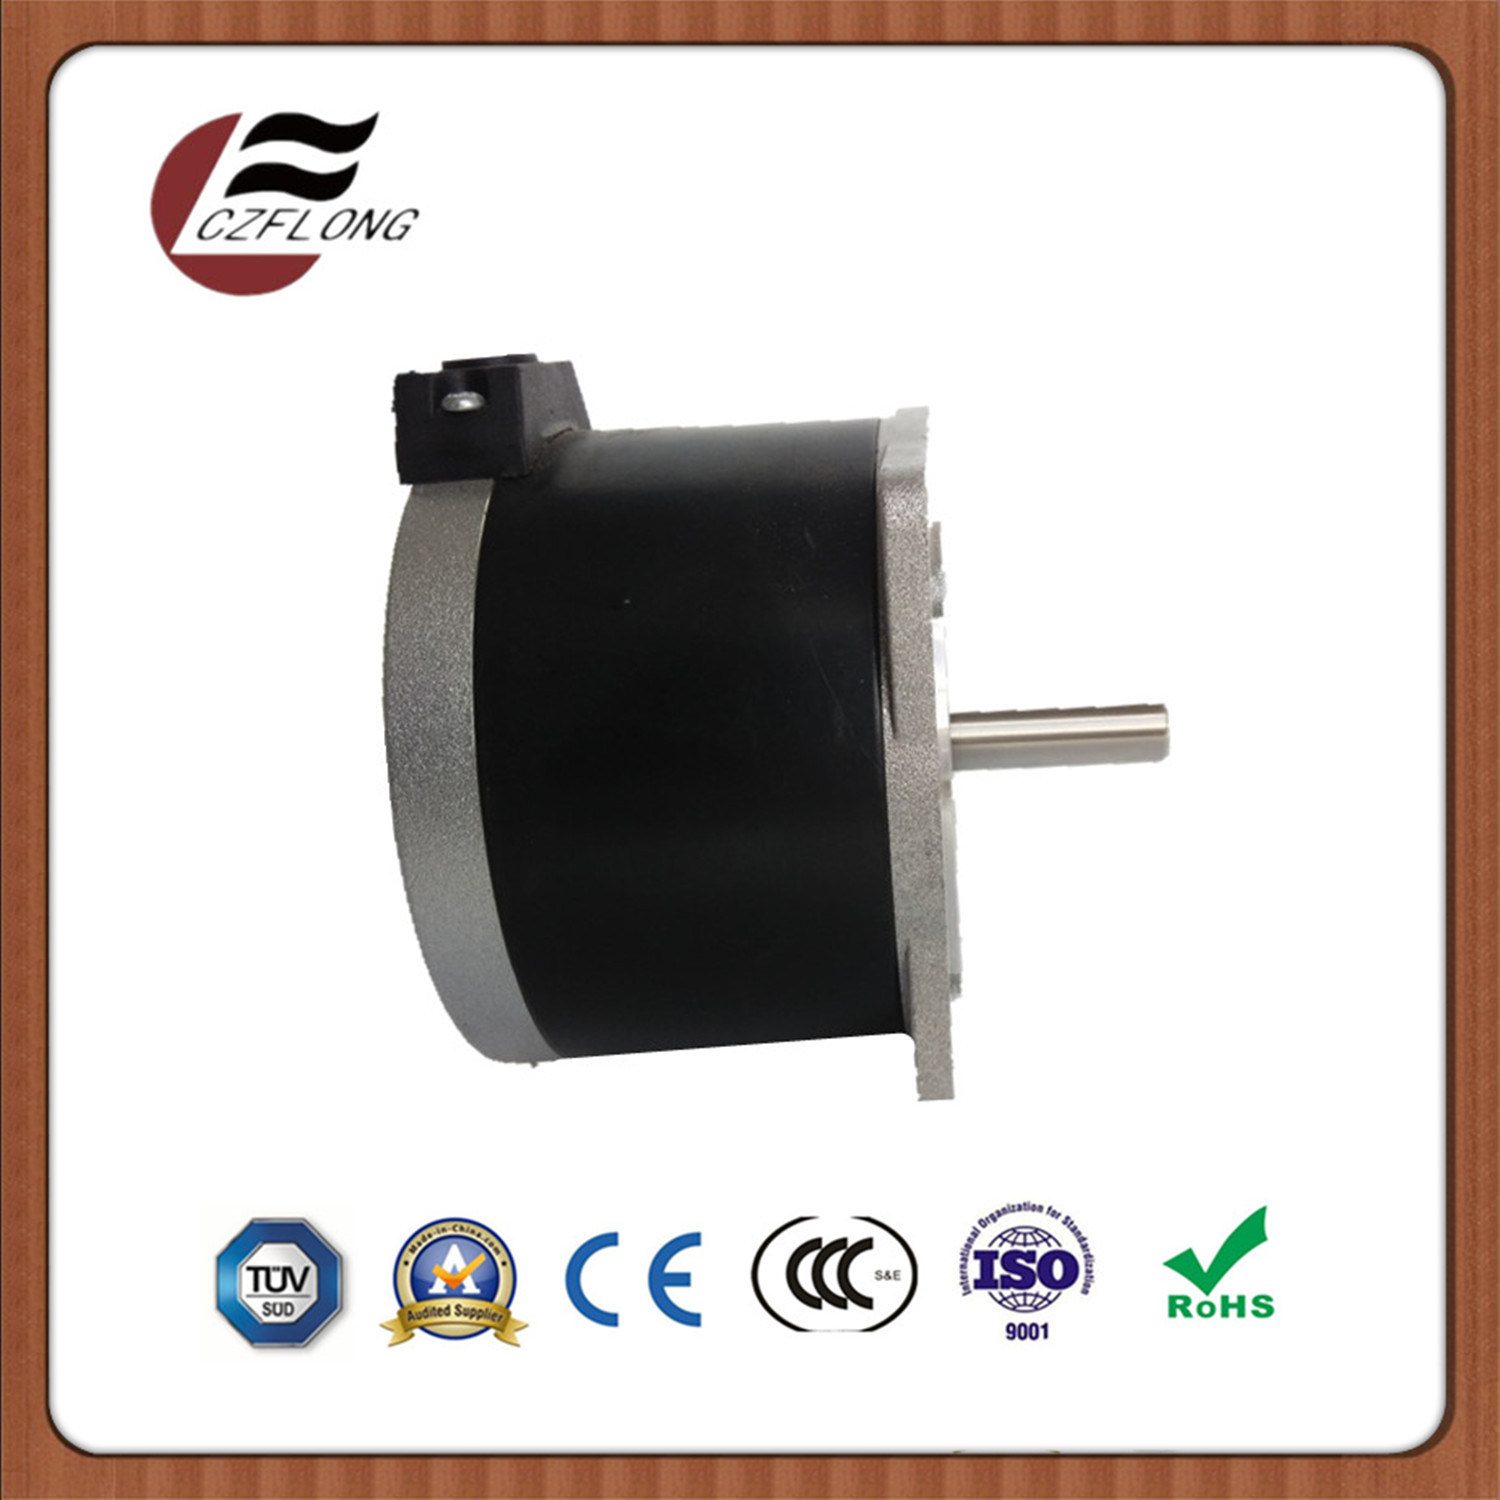 Durable 86*86mm NEMA34 Stepping Motor for Industry CNC Machines